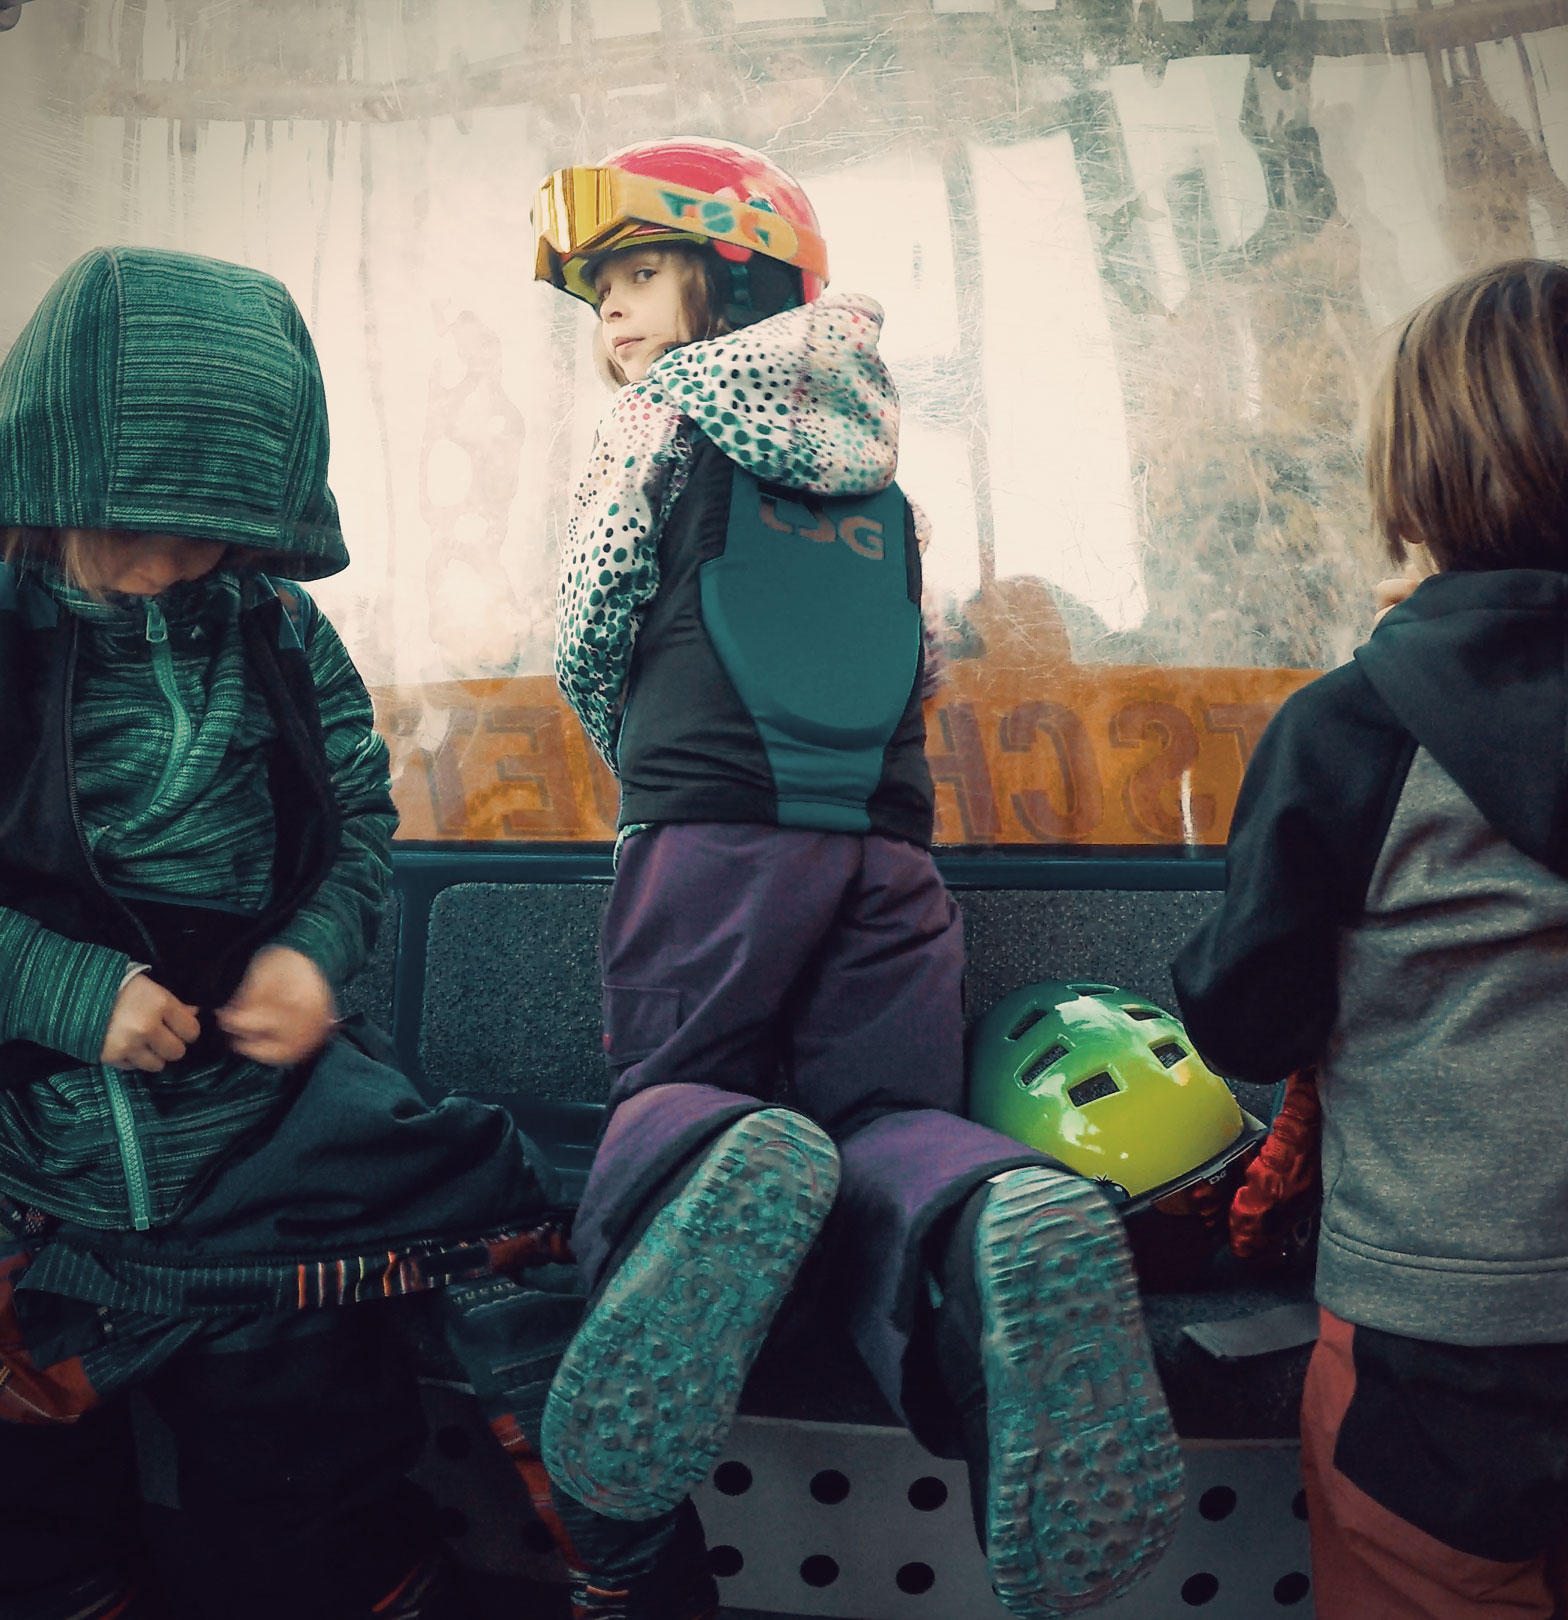 The Snowboarding Family - Kids in gondola with TSG back protector